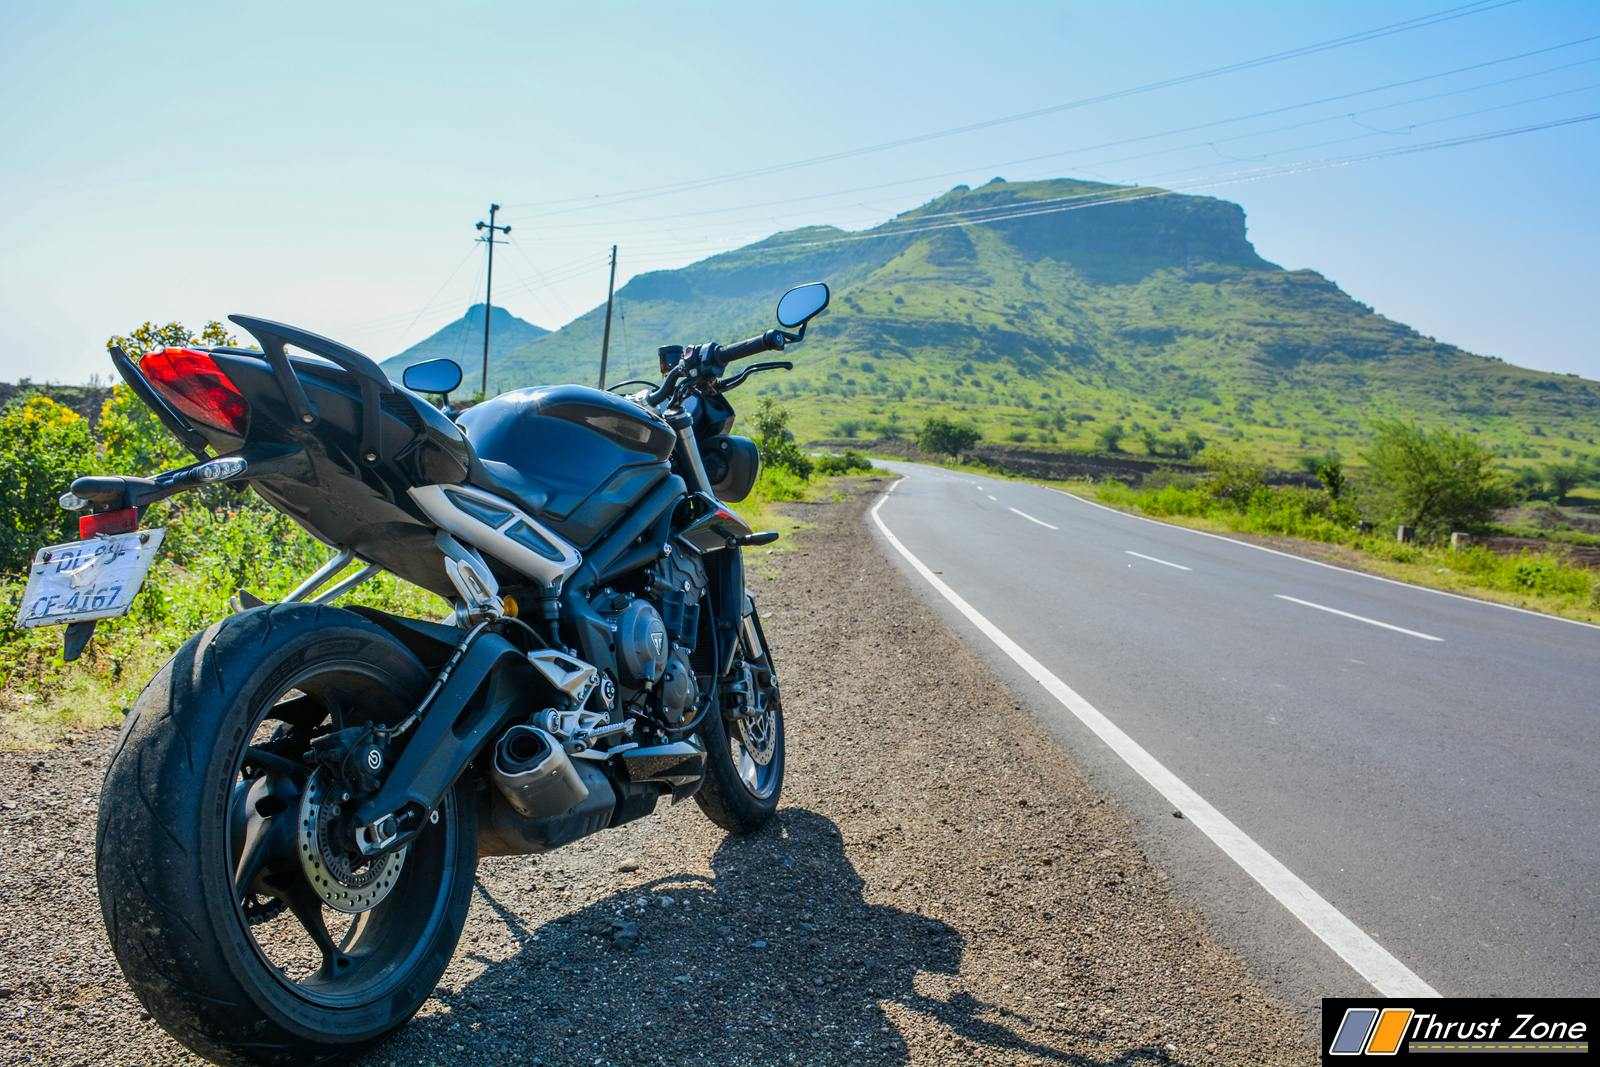 https://www.thrustzone.com/wp-content/uploads/2018/10/2018-Street-Triple-RS-India-Review-5.jpg